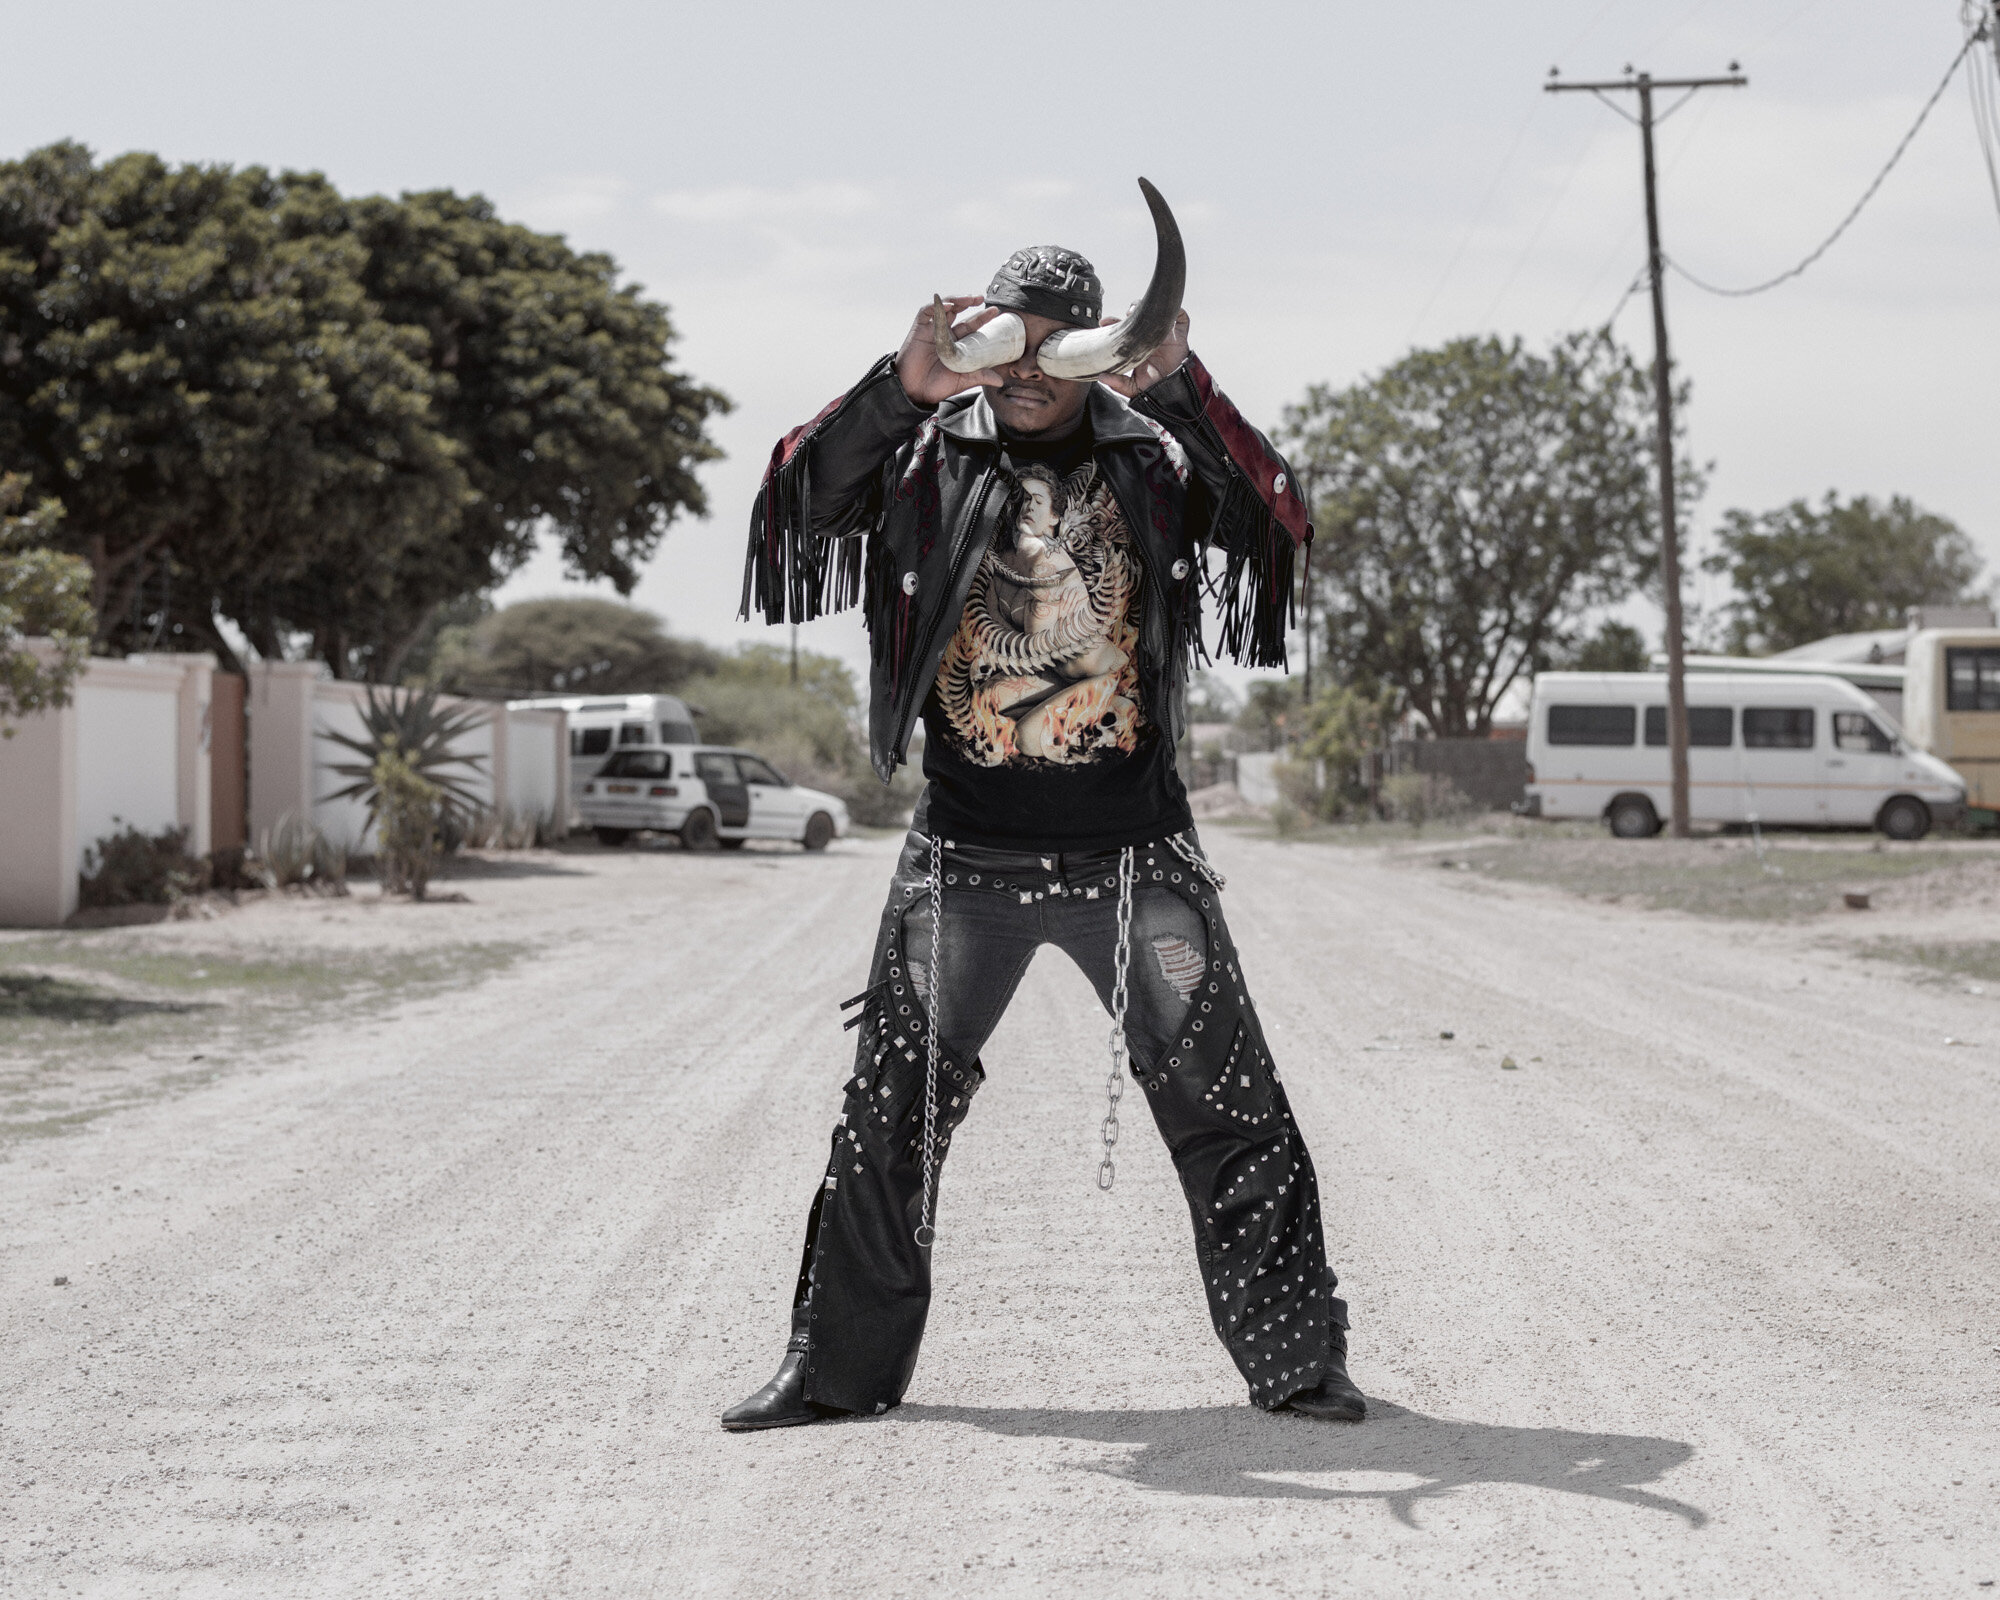 """Africa, Botswana, Gaborone, December 2015Photo by Pep Bonet / NOORPortrait of 27 years old """"Cybok""""I work as a security guard, I started listening to heavy metal in 2008, I liked the way the metal heads dressed and behaved so I started associating myself with them and I became a rocker, I like Skinflint, I'm new in the Industry."""